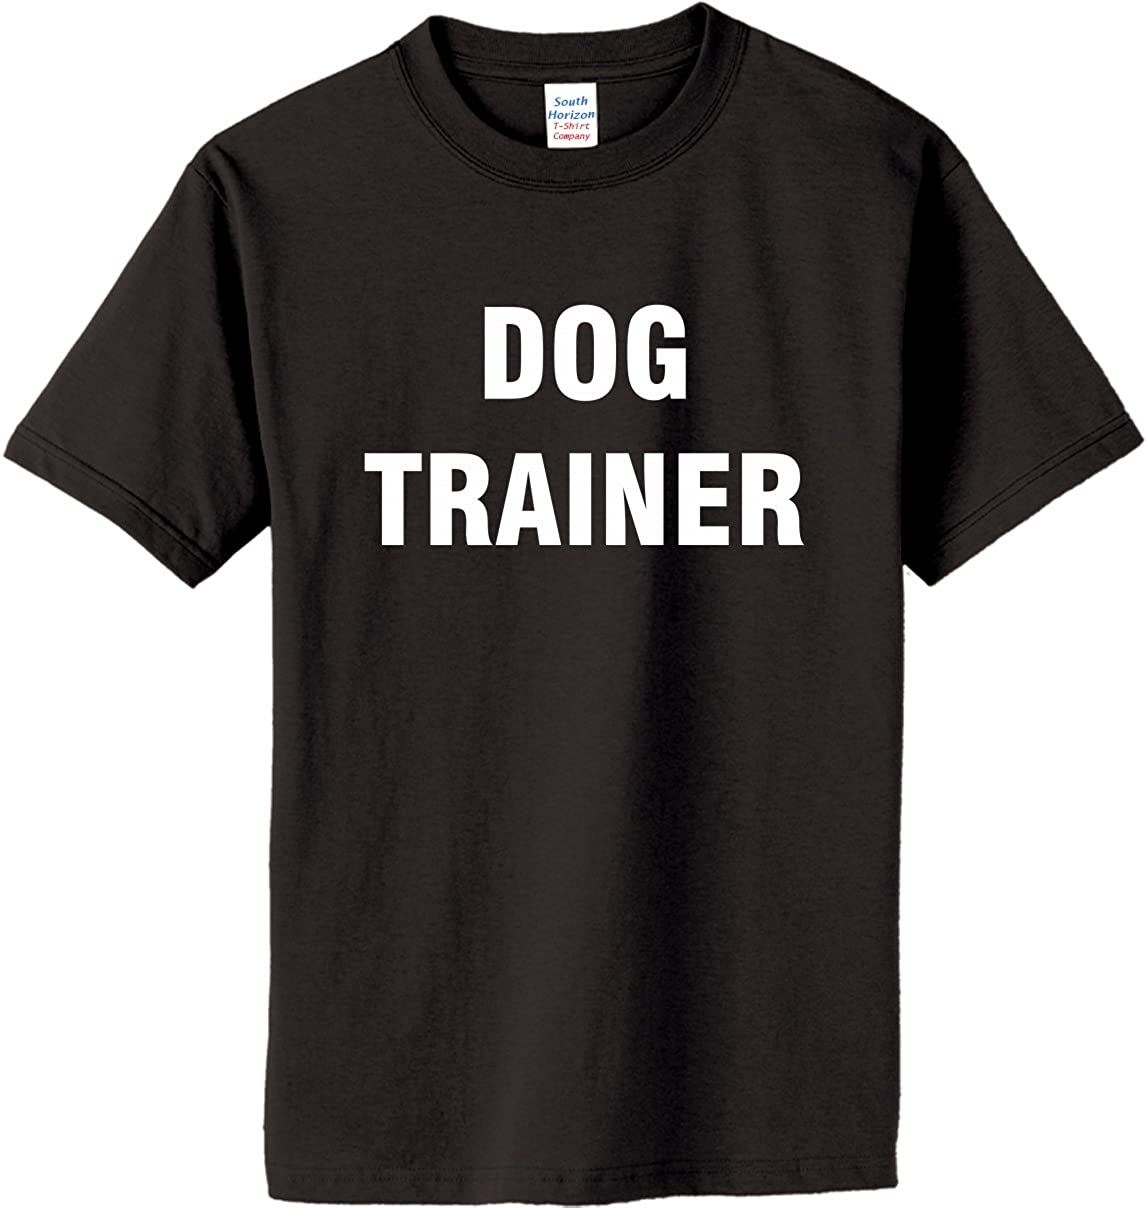 Dog Trainer - Adult & Kids Youth T-Shirt